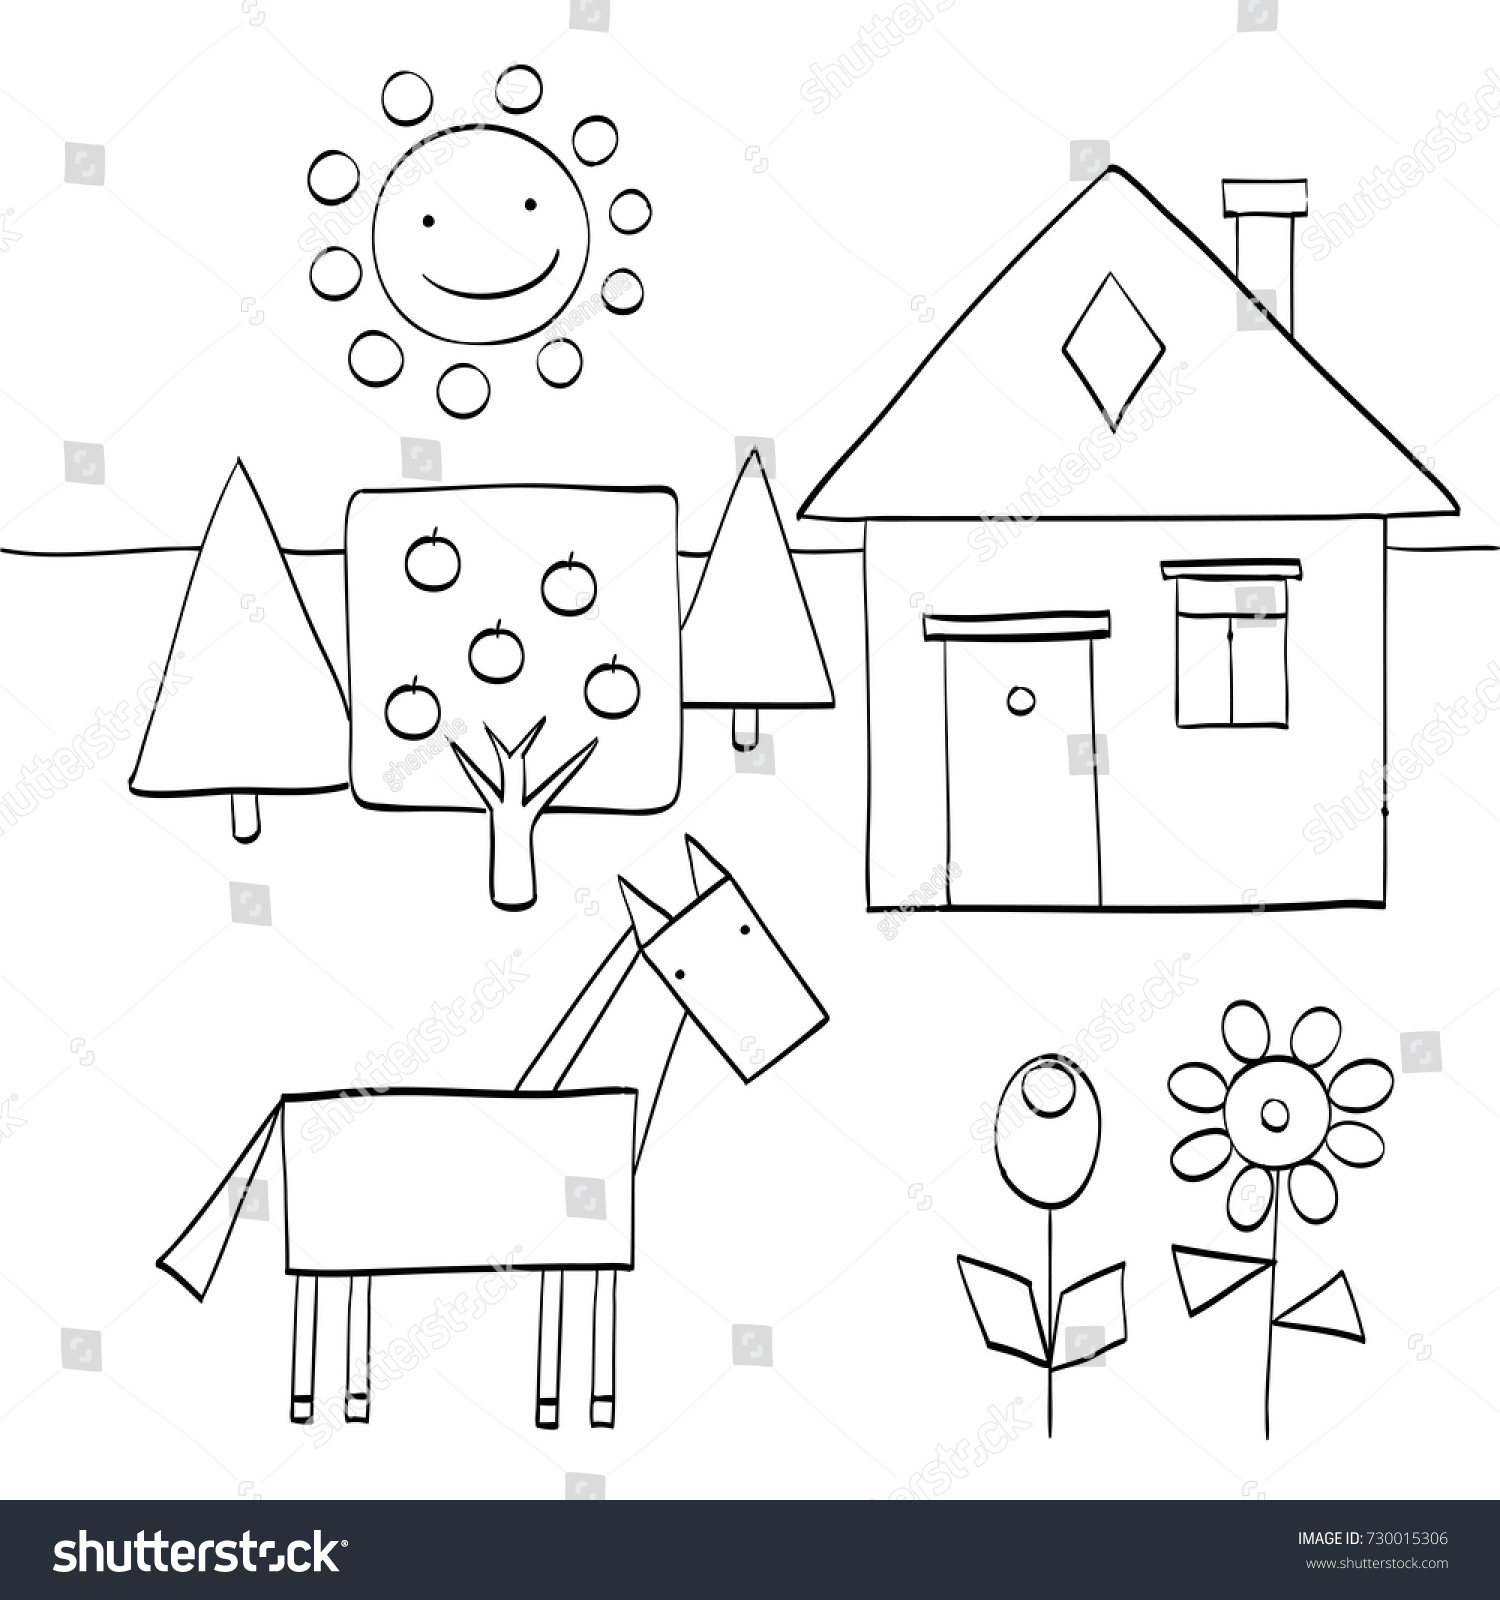 Coloring Page For Children To Find Geometric Shapes In Nature House Trees Sun